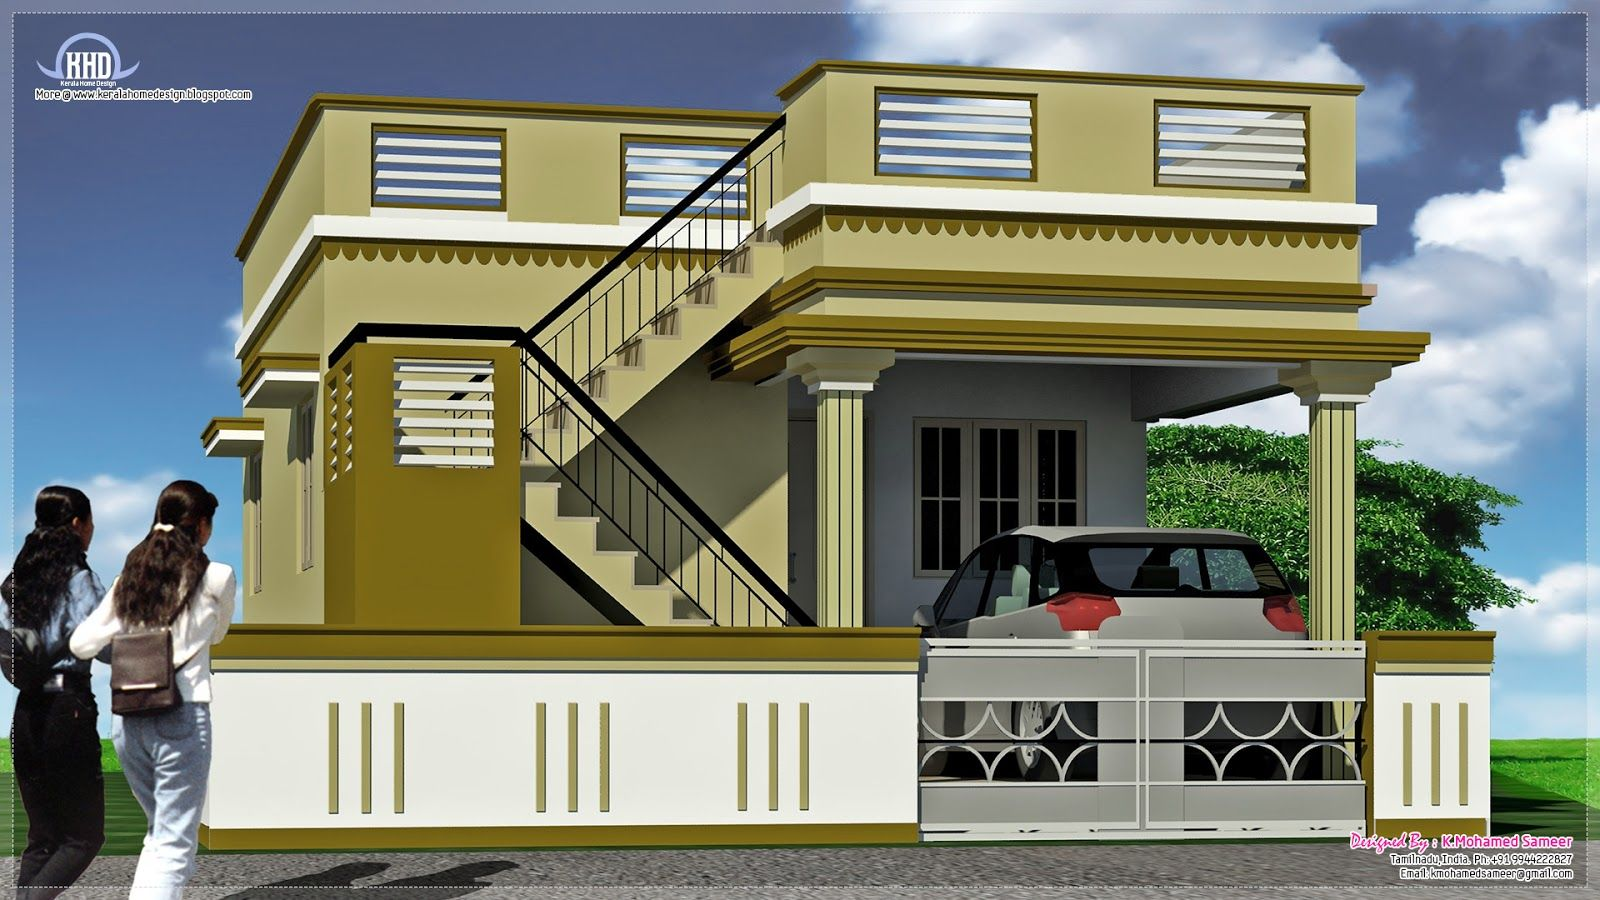 South indian house exterior designs house design plans Indian home exterior design photos